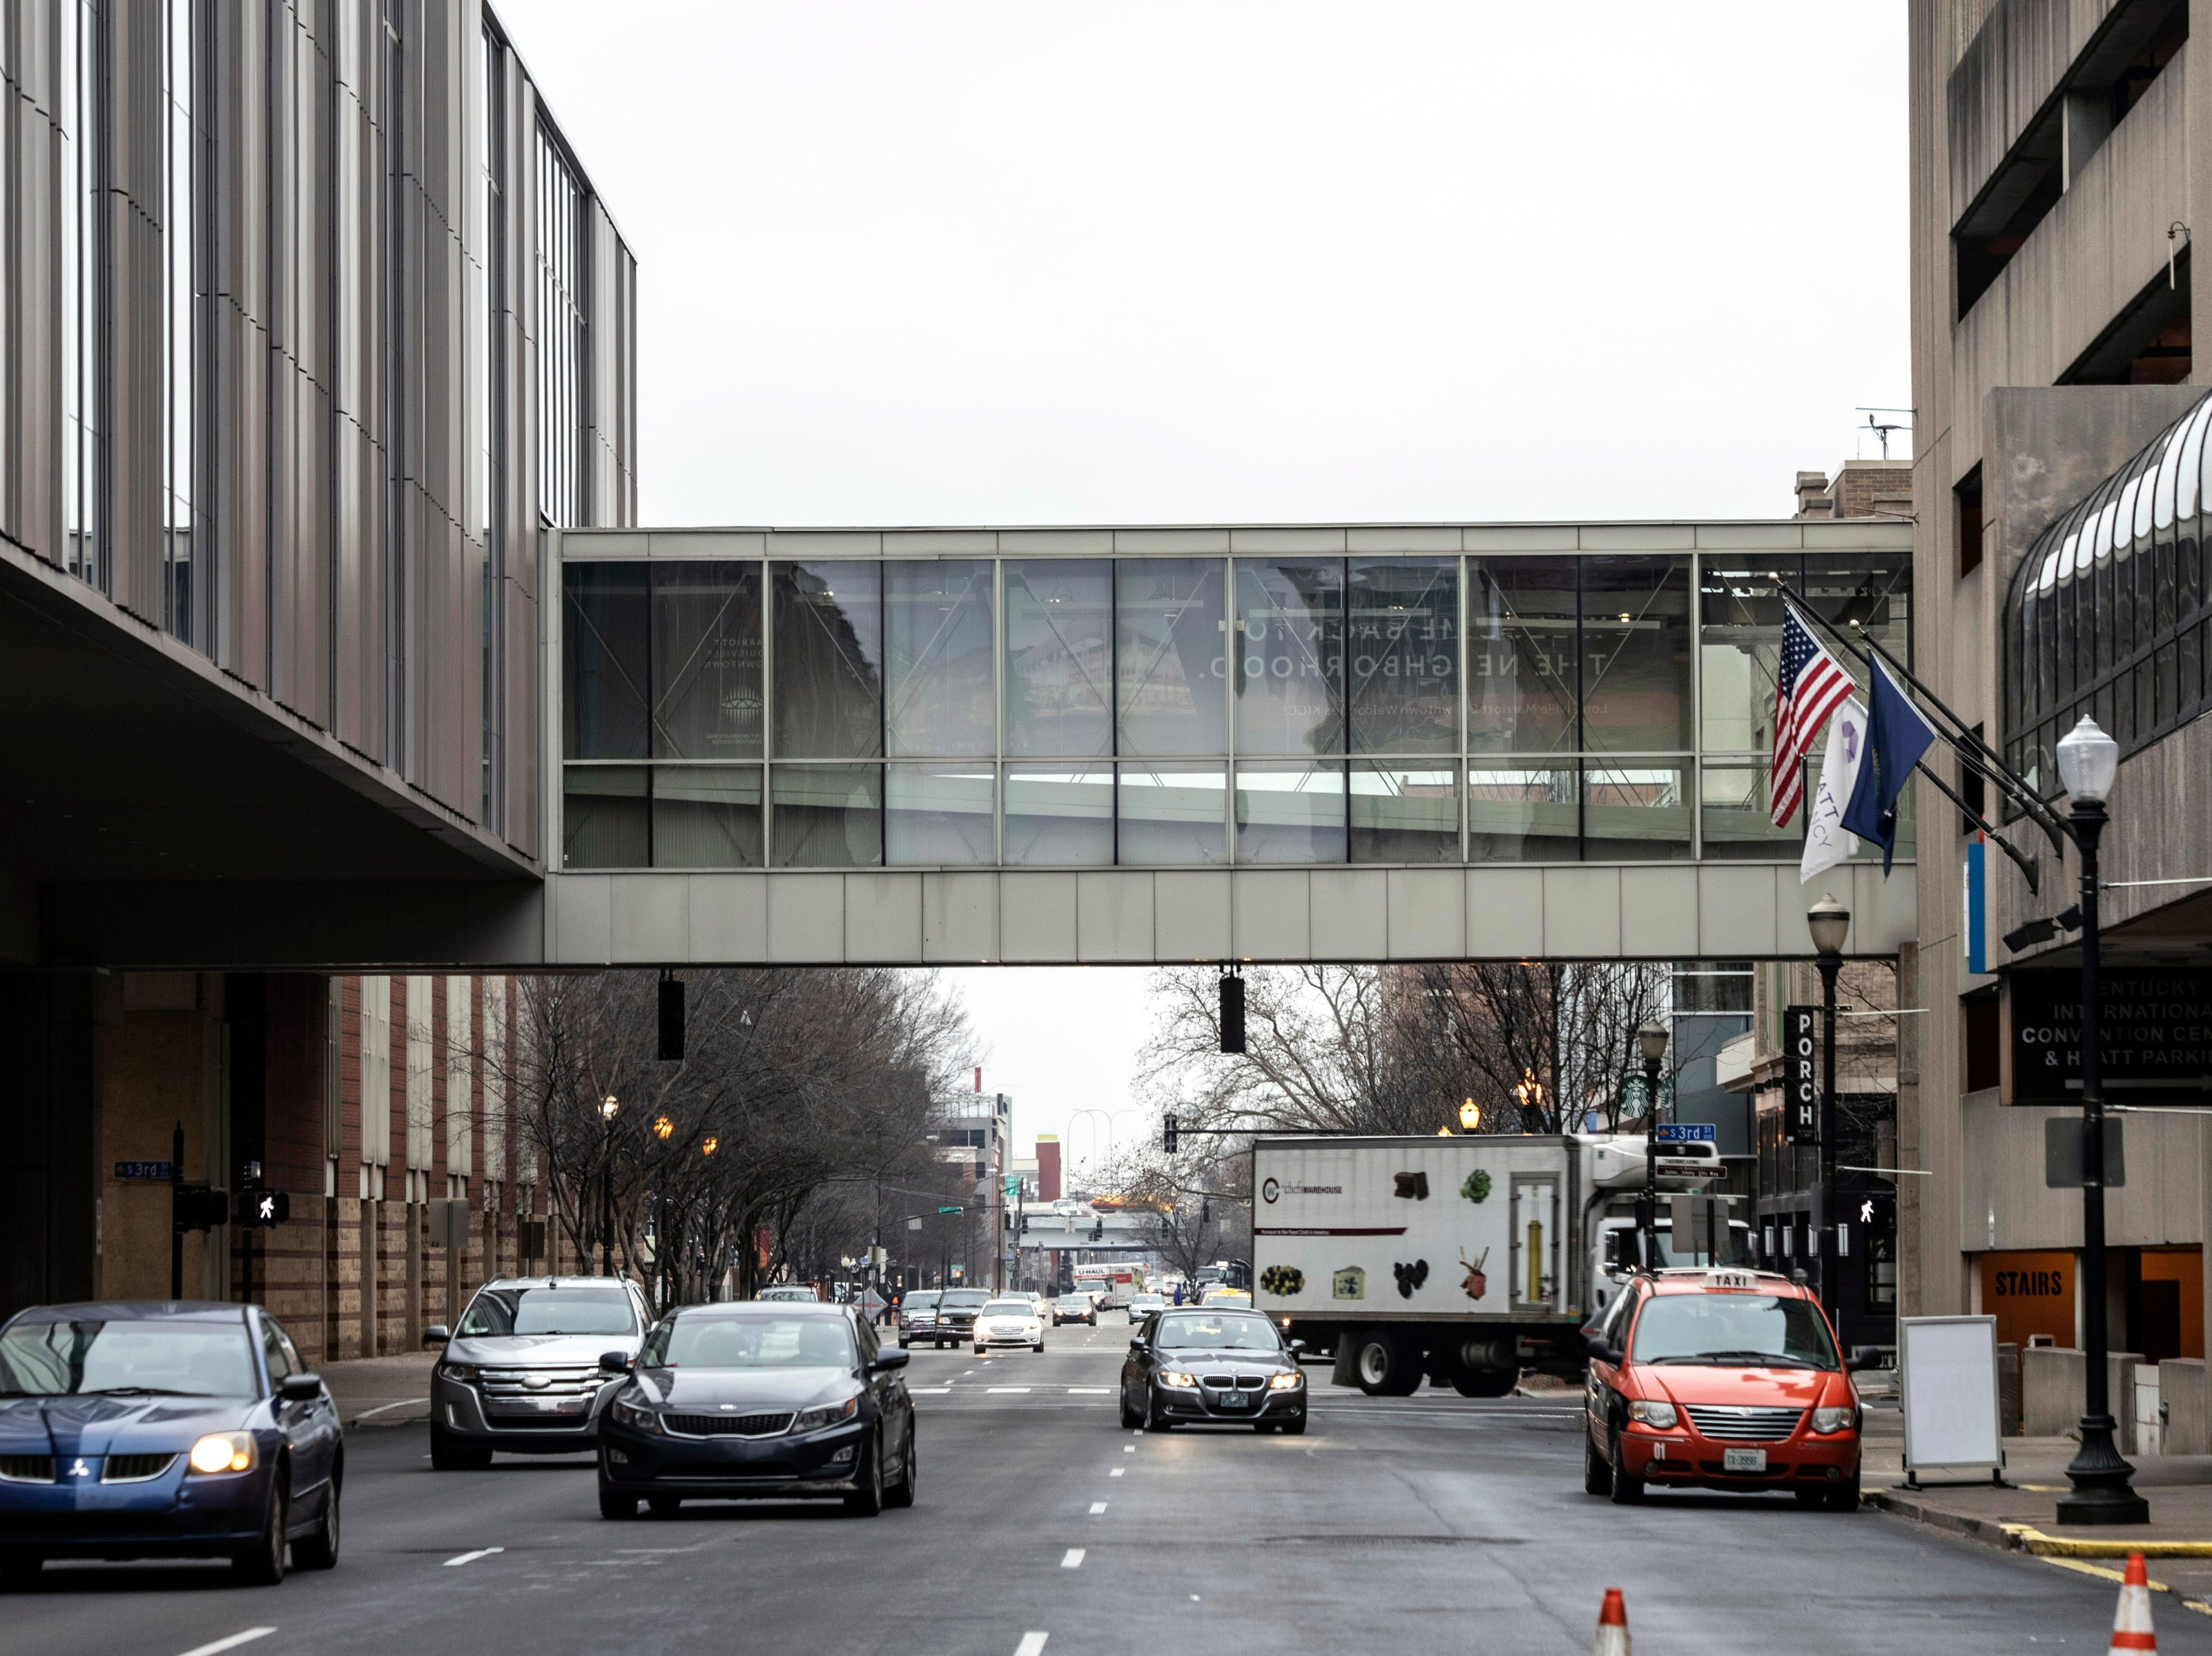 The portion of Louie Link that spans Jefferson Street provides covered access to the Kentucky International Convention Center for nearby hotel guests. 1/16/19